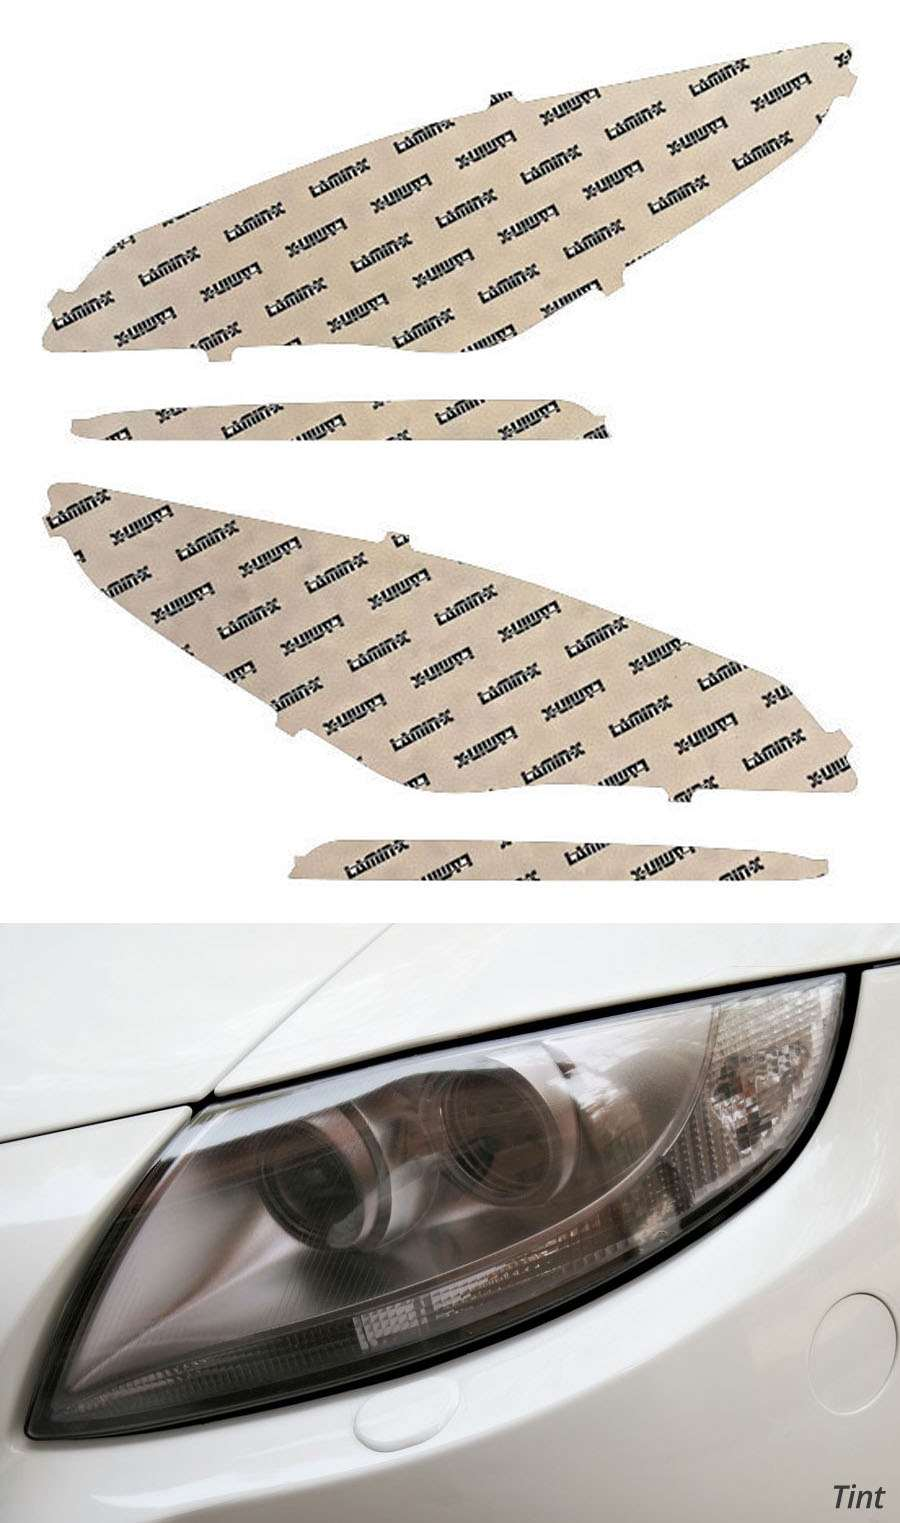 Hyundai Sonata 15-17 Tint Headlight Covers Lamin-X HY029T